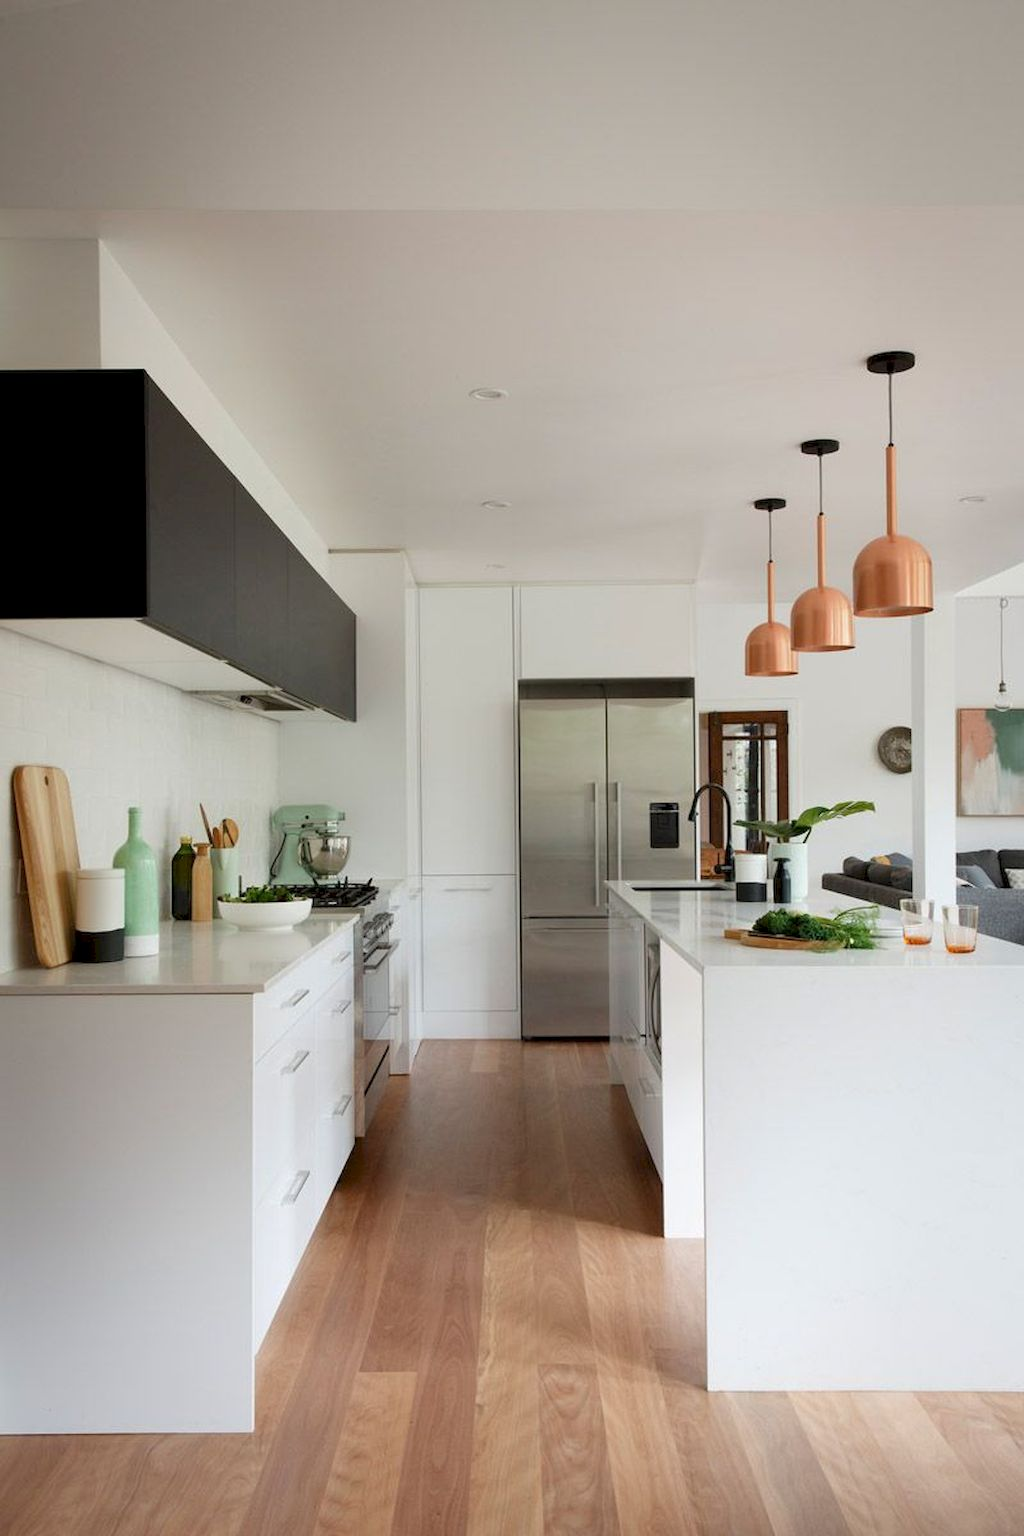 Decorative Kitchen Pendant Design with Modern and Classic Concept Part 8